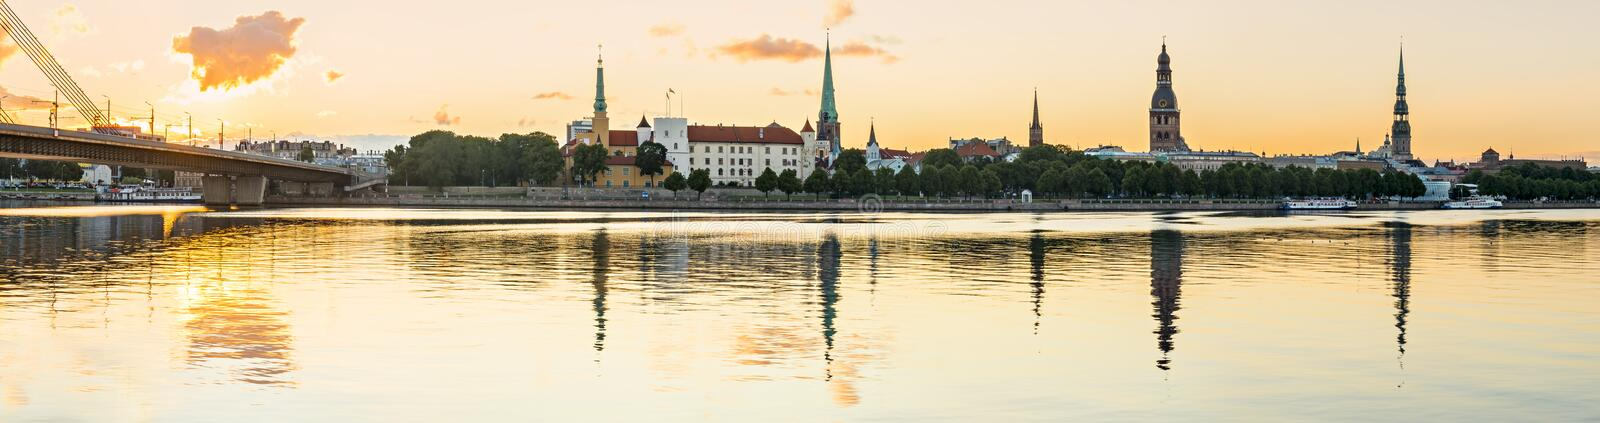 Panoramic view from a public domain embankment on old Riga city, Europe stock photography